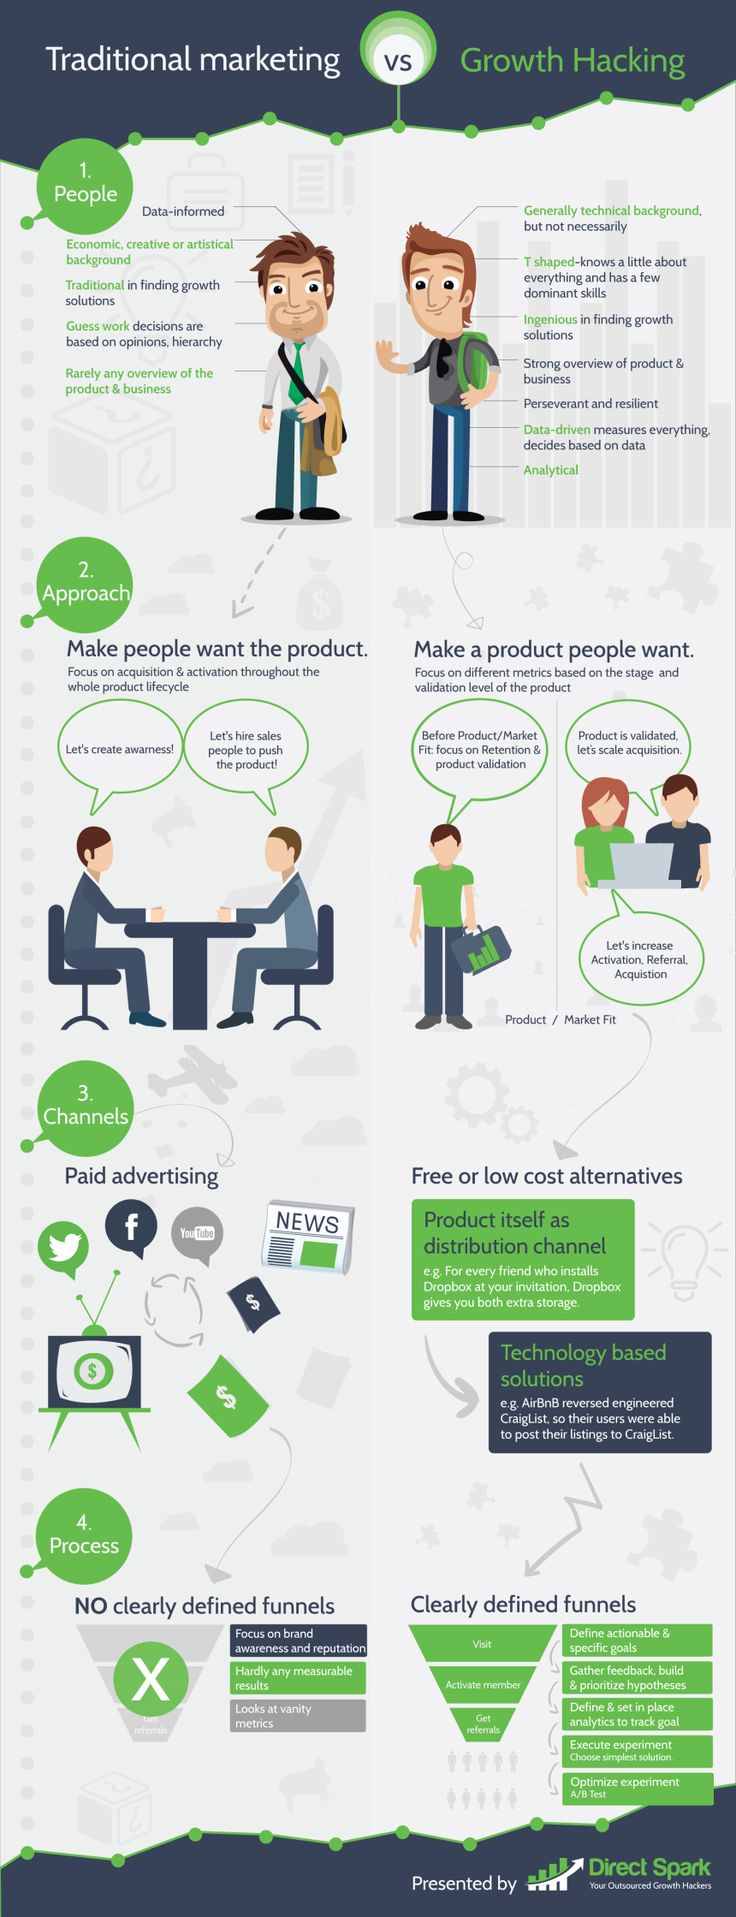 Marketing Tradicional Vs Growth Hacking Muy buena, interesante y cierta infografía: Comparando los nuevos y los clásicos sistemas del Marketing y plasmando varias de las diferencias mas sustanciales.